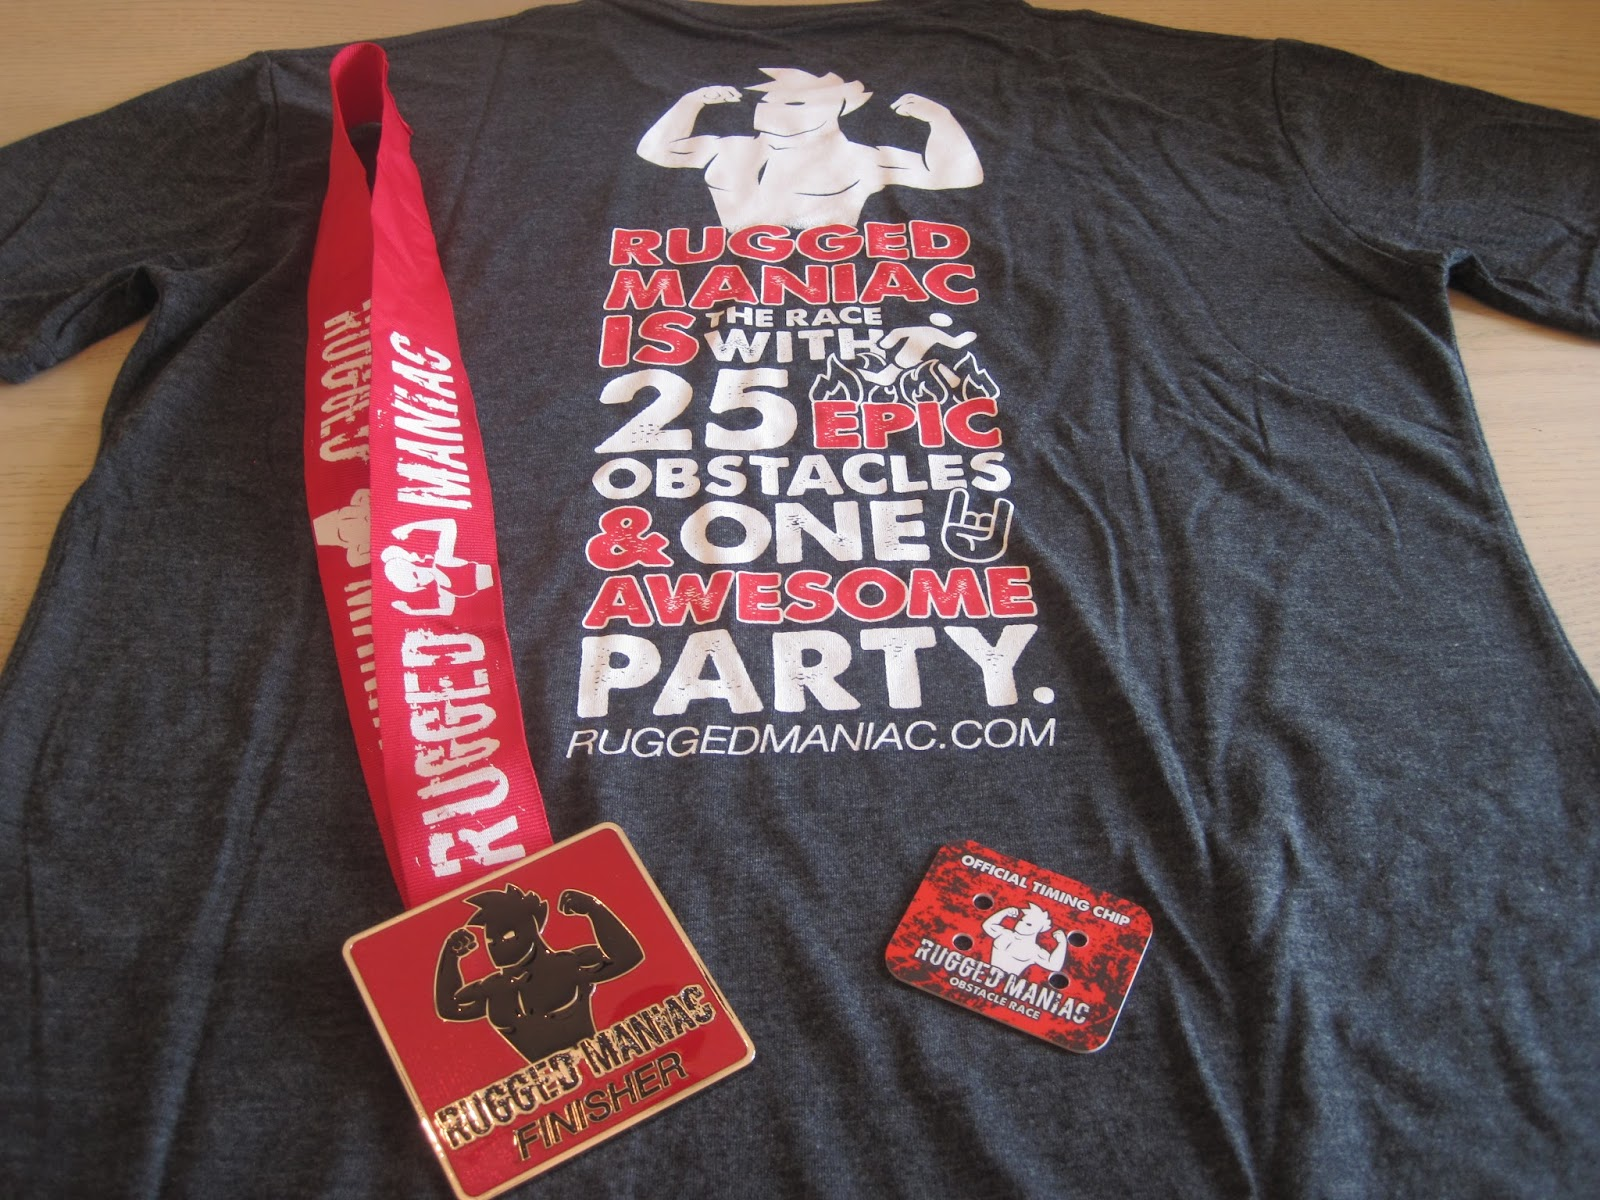 And Due To All That You Ve Read In This Report I Can Say Wont Be A Wearing Shirt B Ever Calling Myself Rugged Maniac Grade